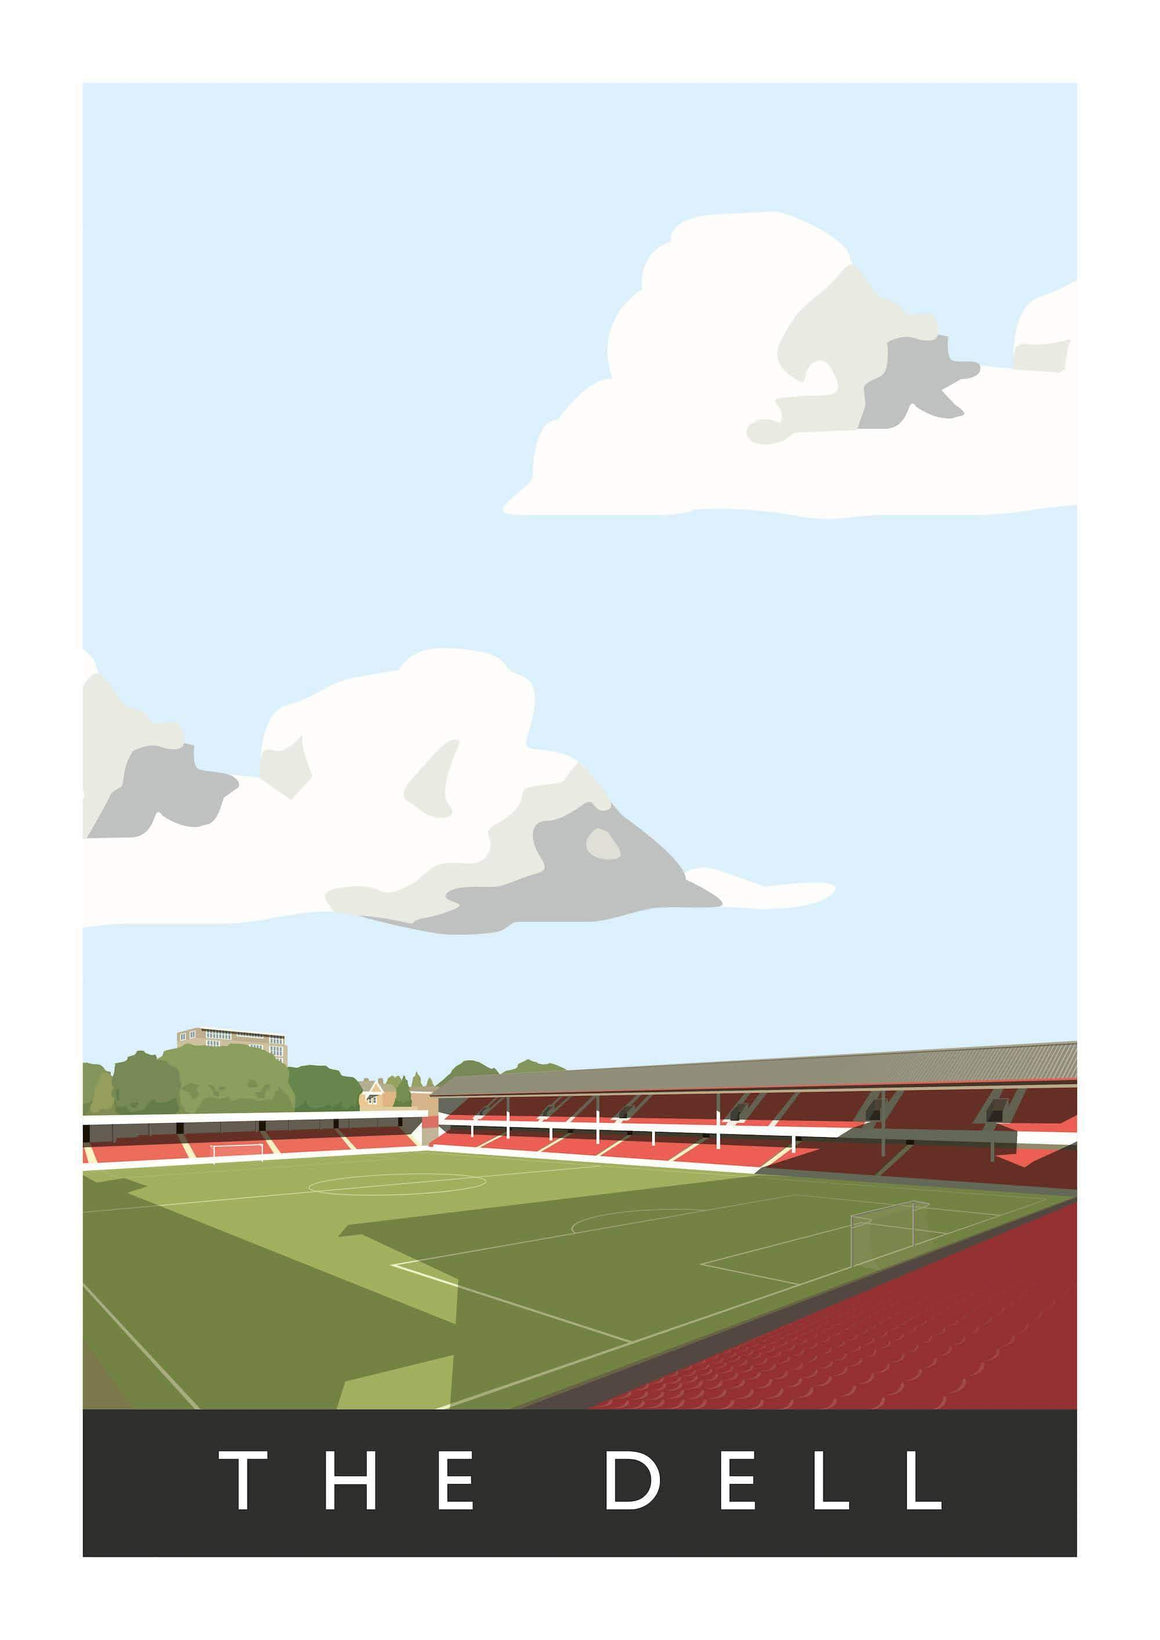 Poster of Southampton ground The Dell - Football Shirt Collective